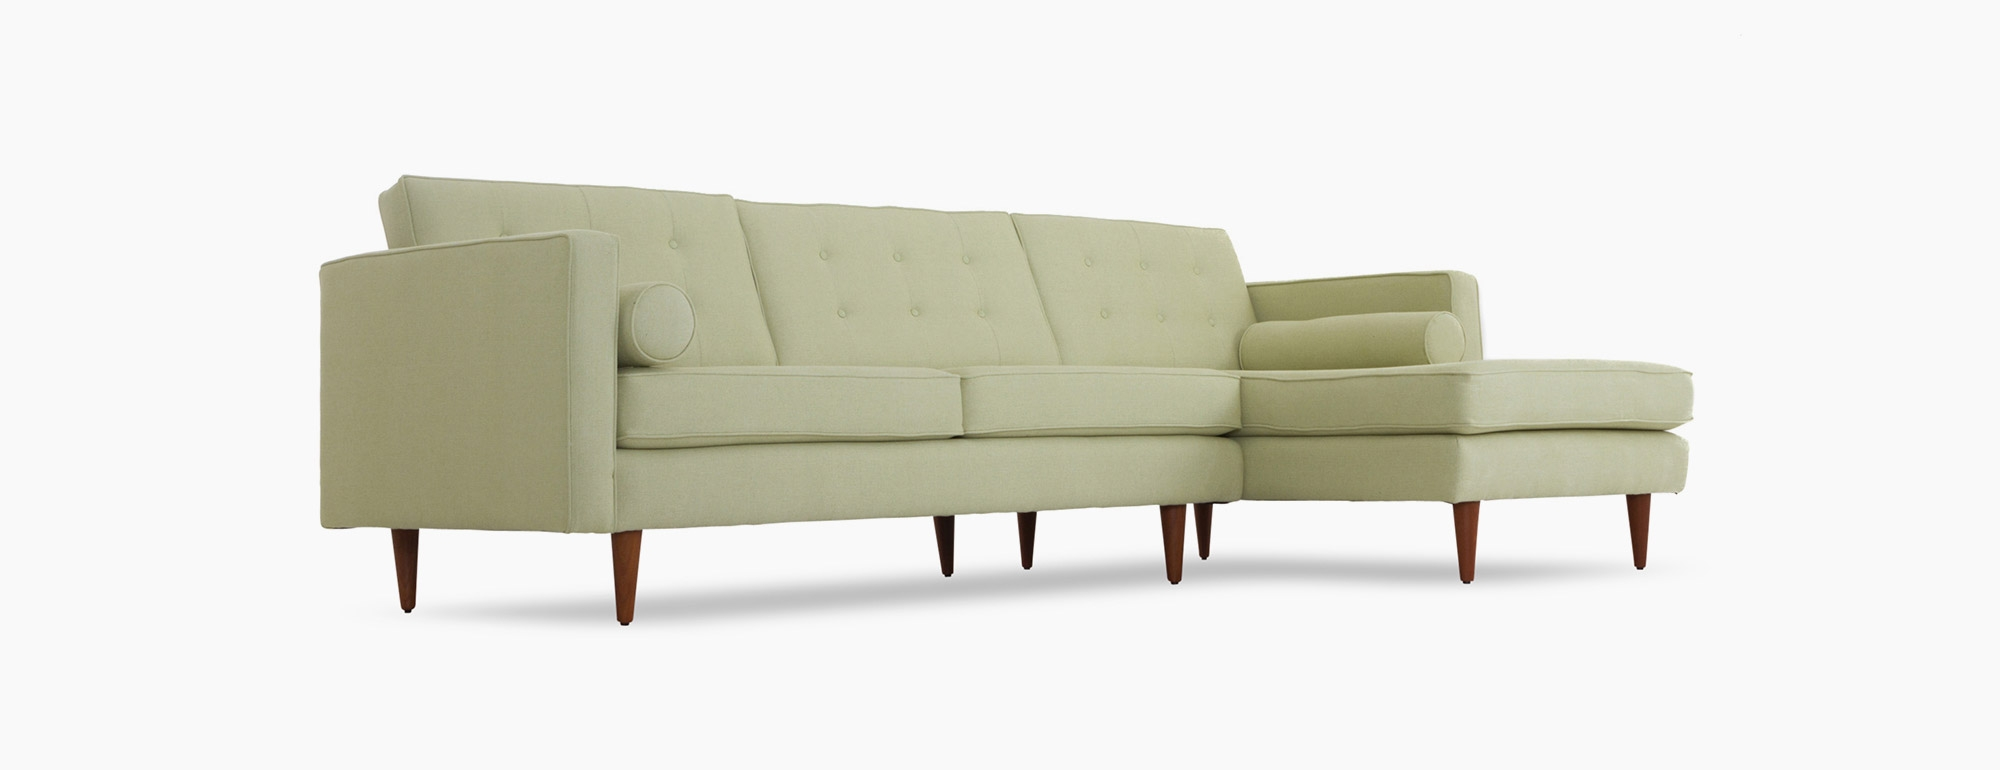 Braxton Sectional Joybird Throughout Braxton Sectional Sofa (Image 8 of 15)